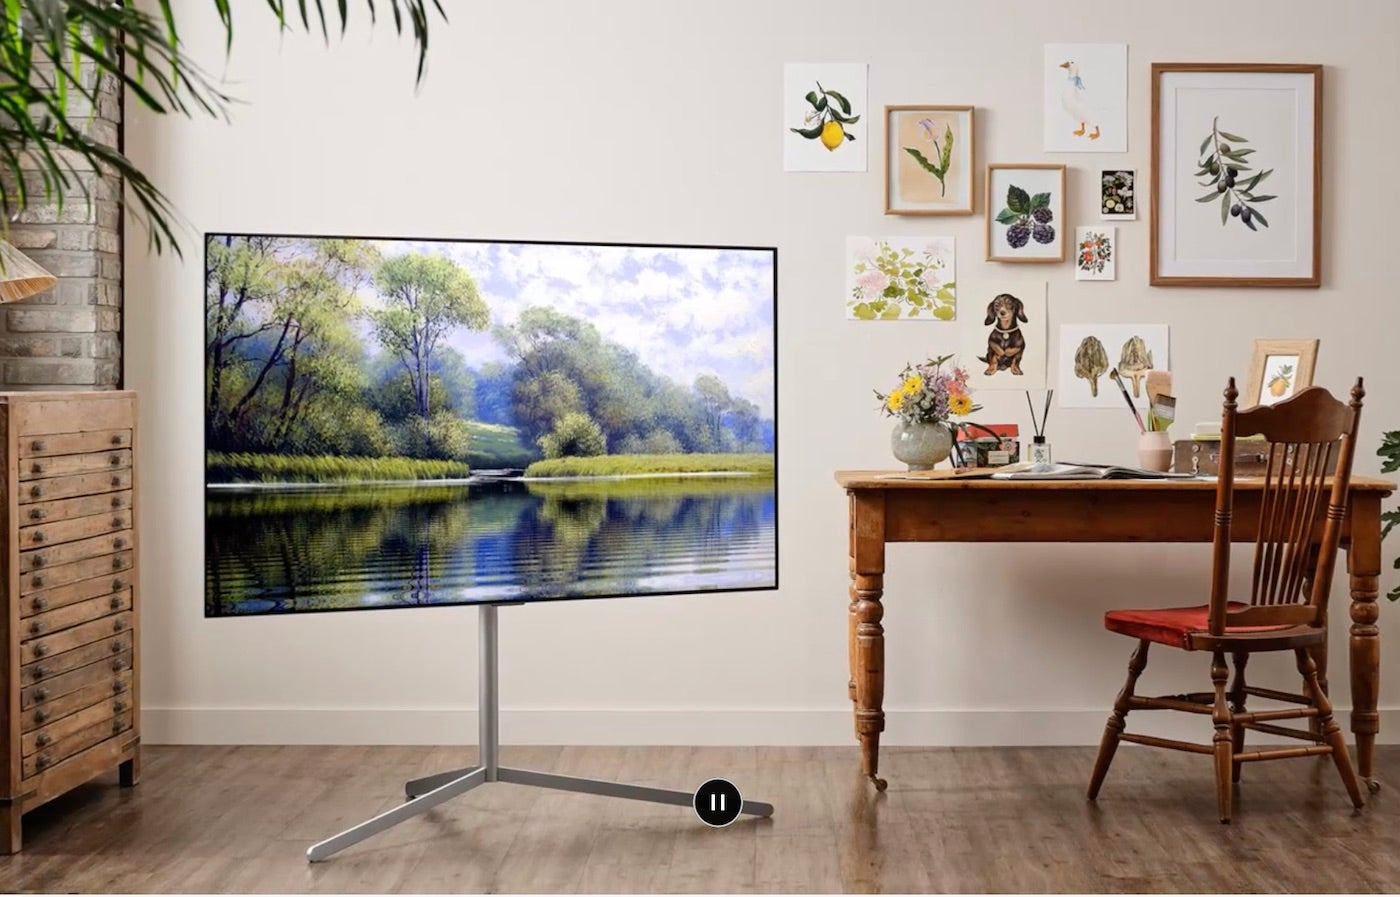 LG G1 (OLED65G1) Review: OLED Evo-lution | Trusted Reviews